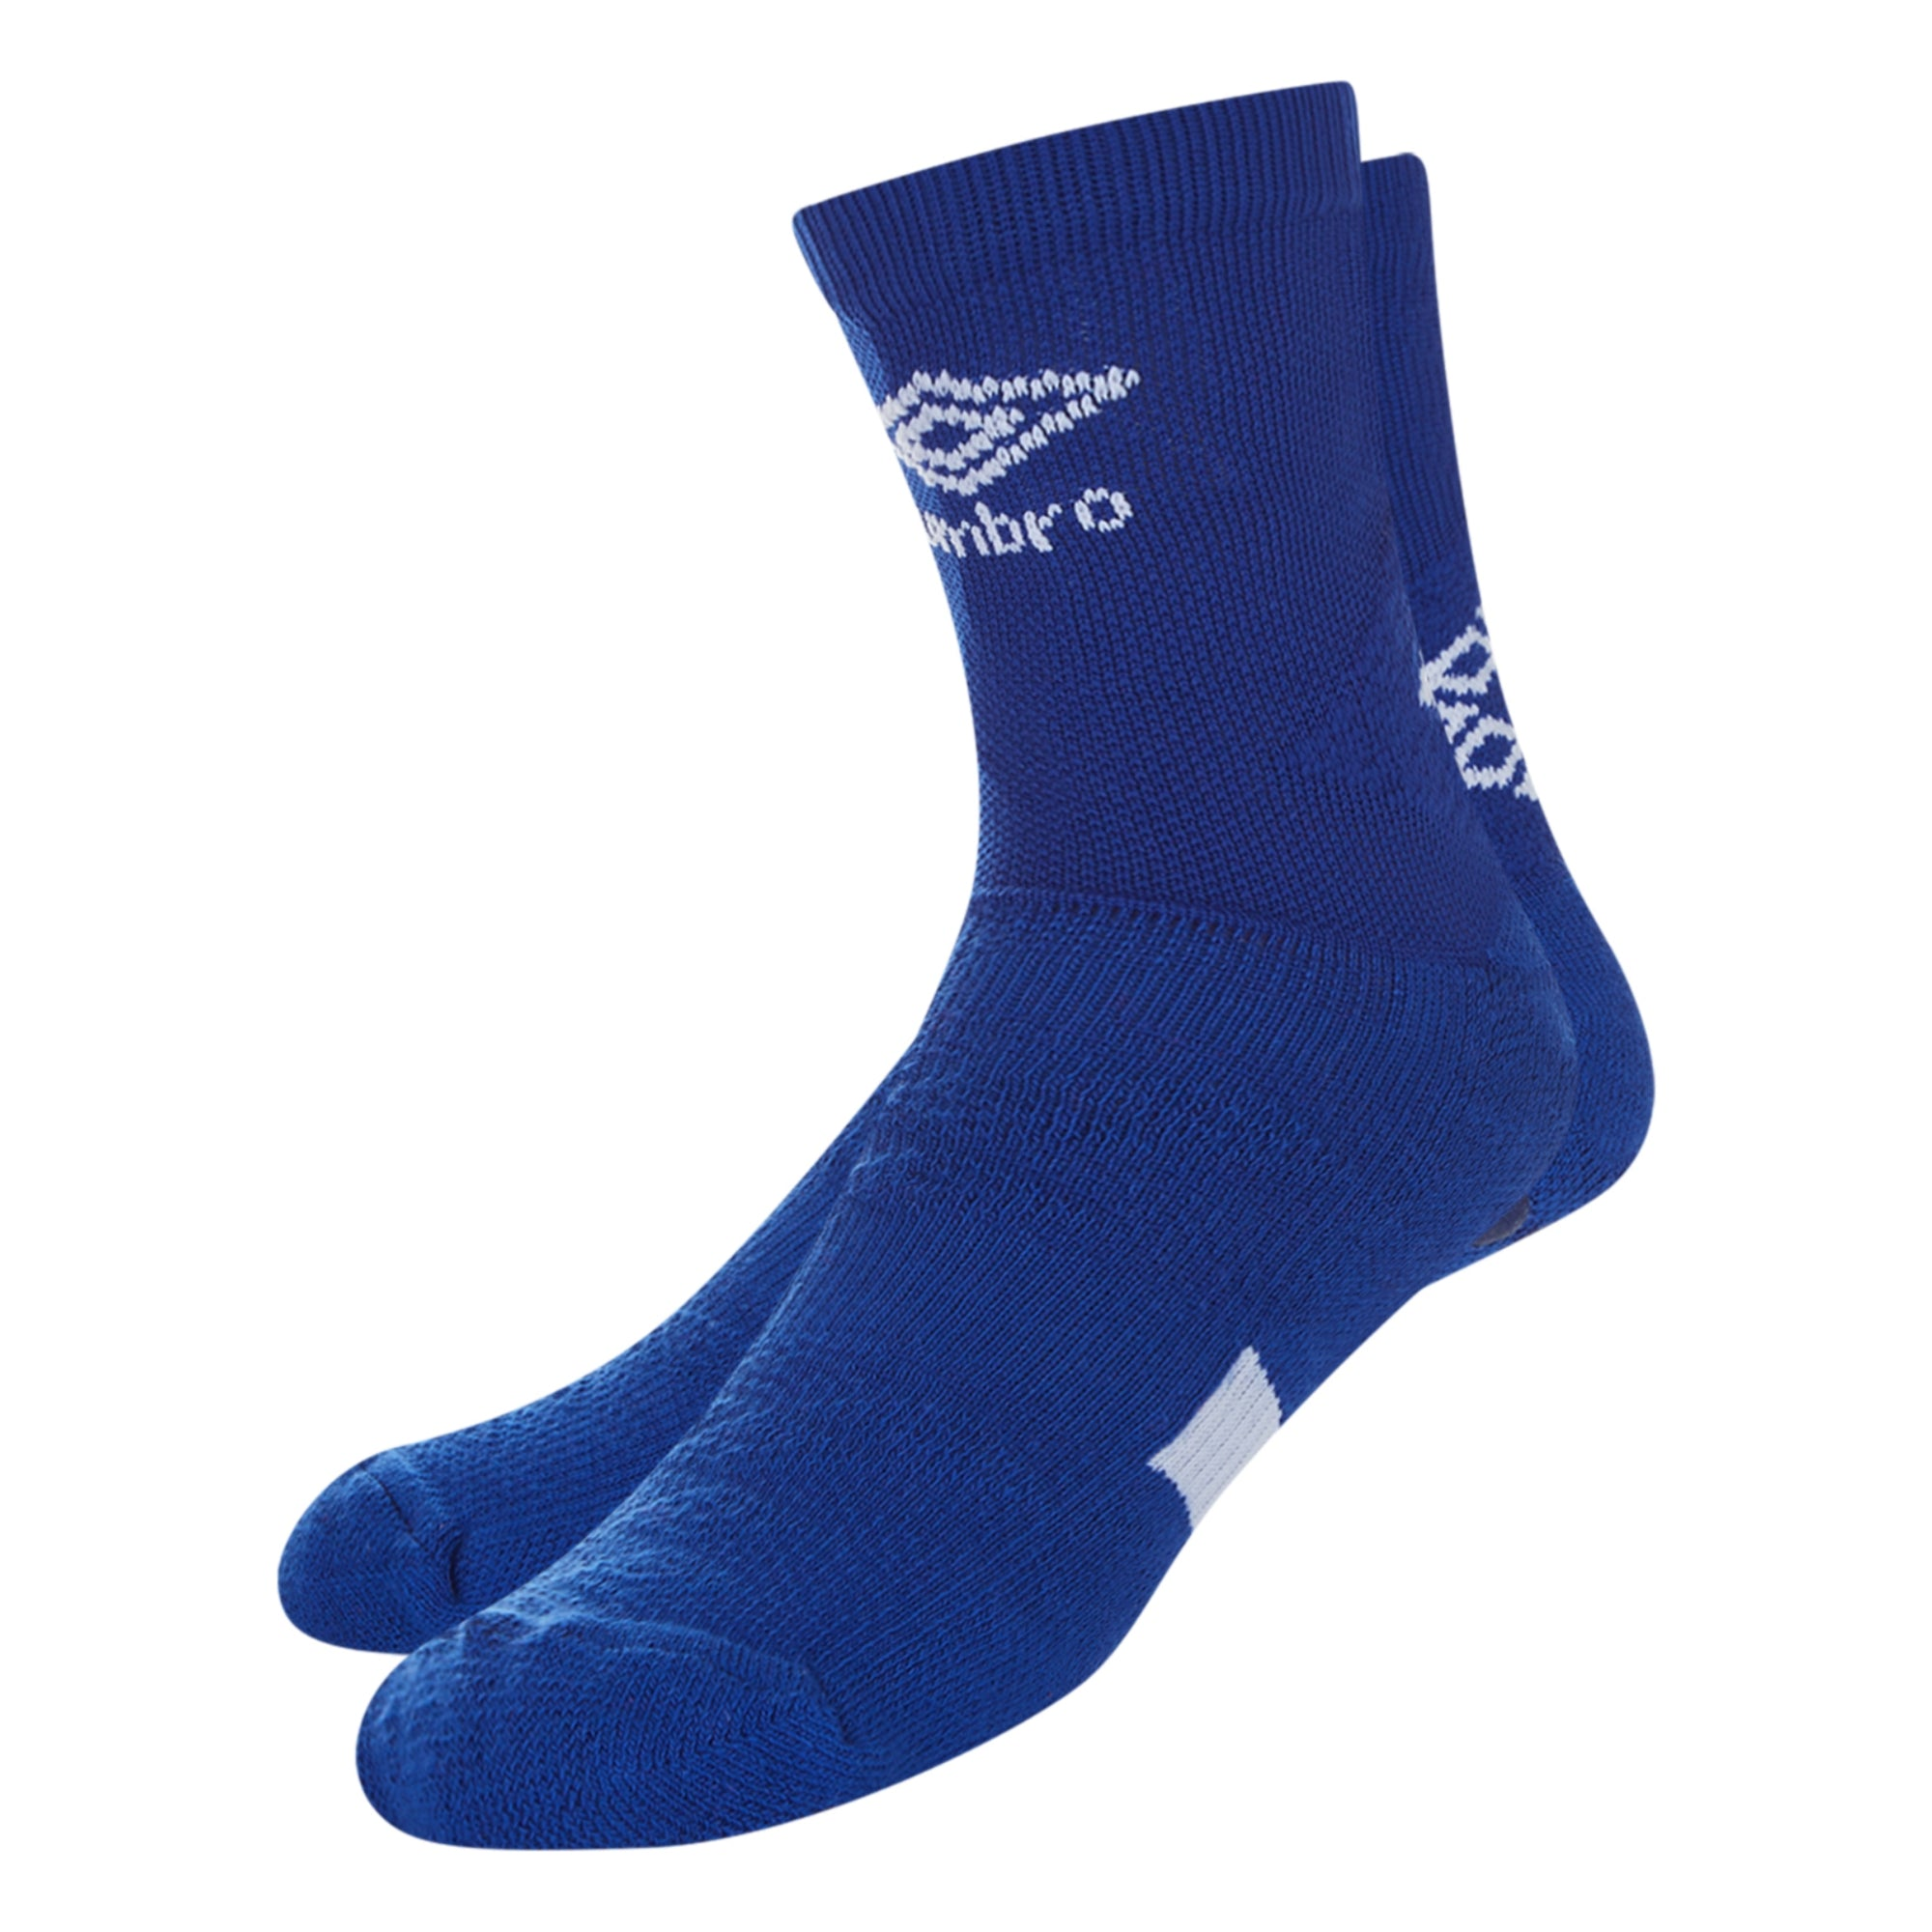 Umbro Protex Grip Sock - Royal